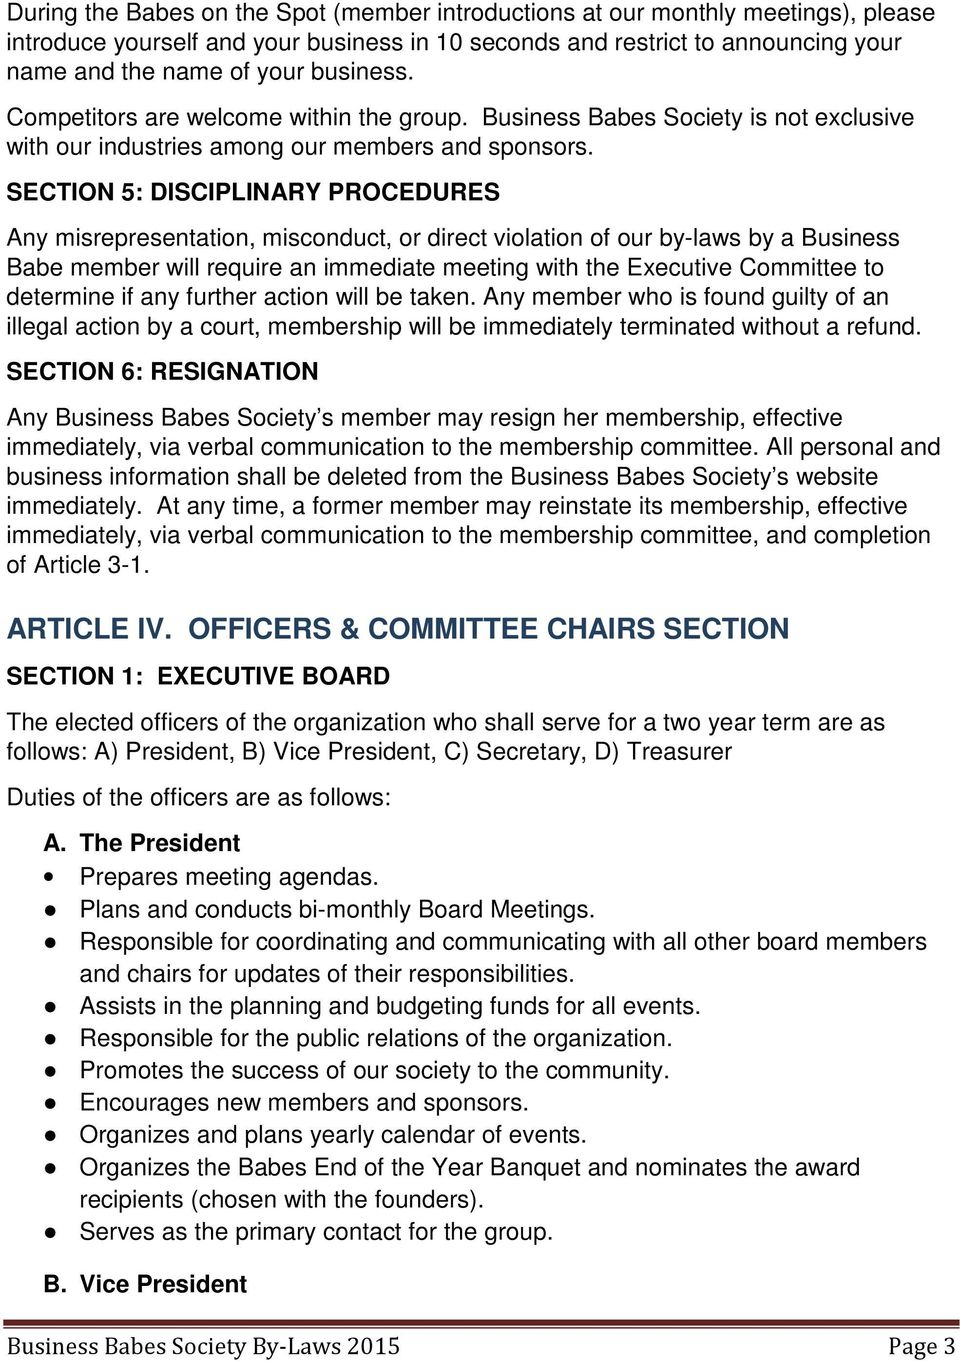 SECTION 5: DISCIPLINARY PROCEDURES Any misrepresentation, misconduct, or direct violation of our by-laws by a Business Babe member will require an immediate meeting with the Executive Committee to